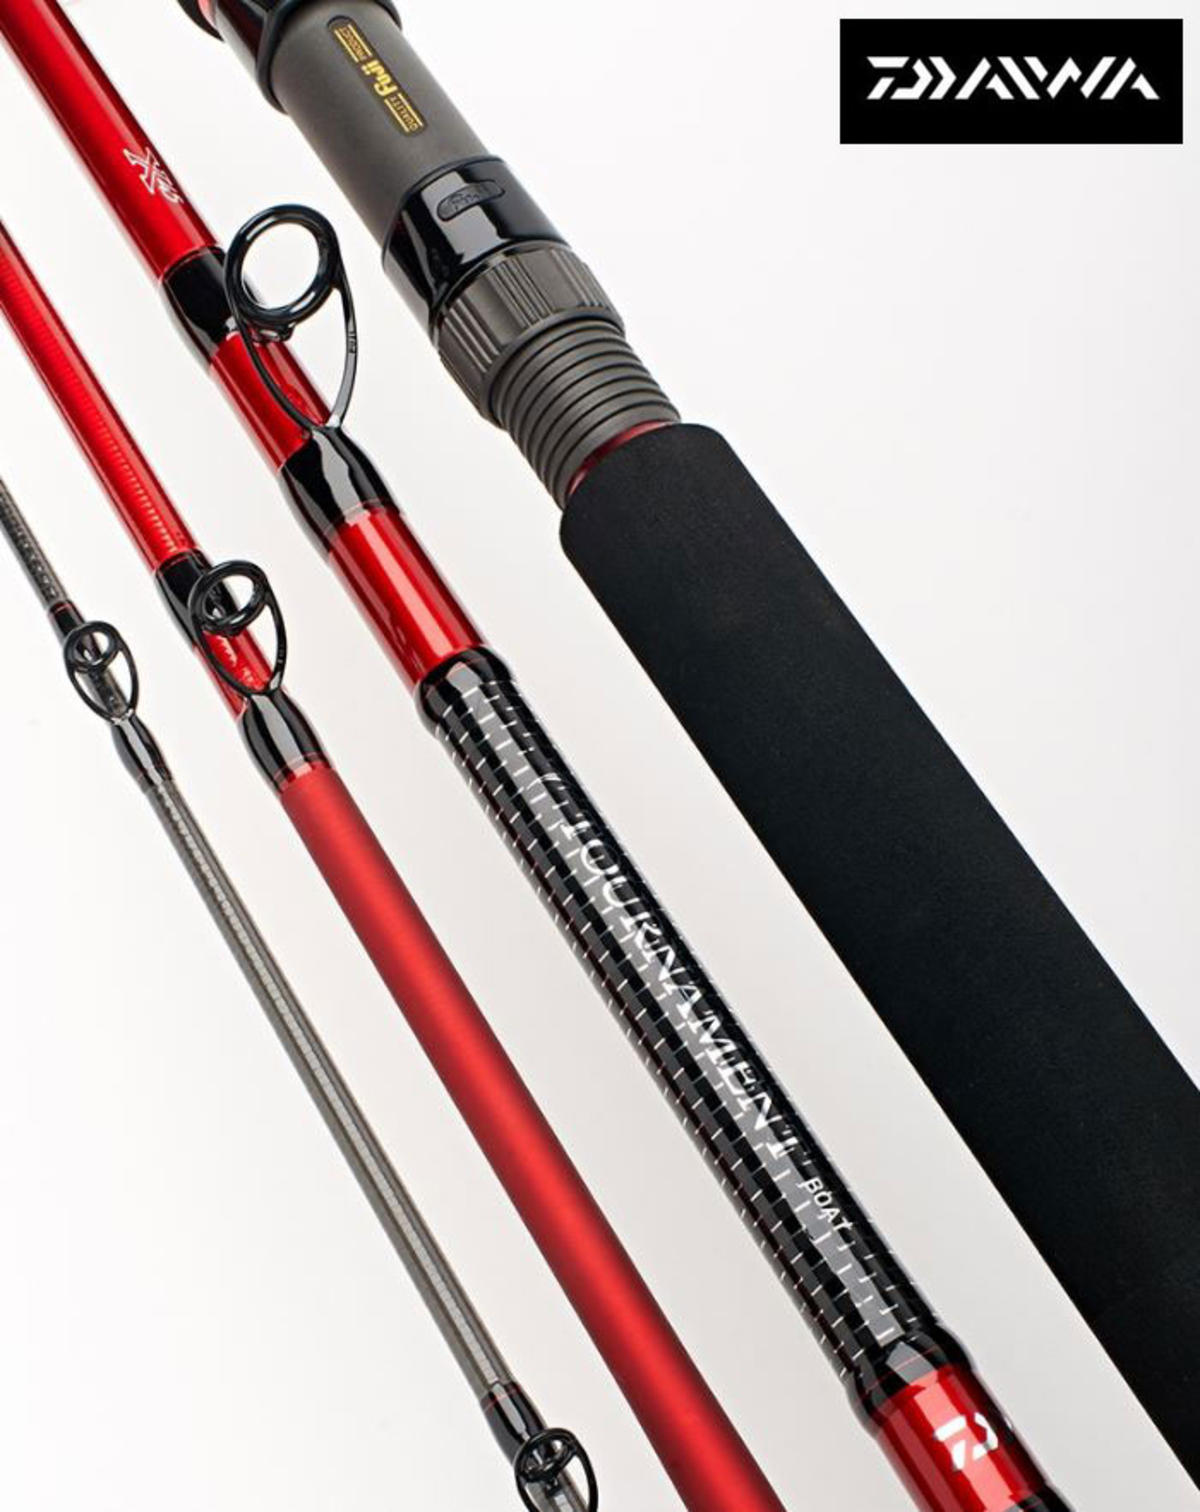 New Daiwa Tournament Travel Boat Fishing Rod - All Models Available